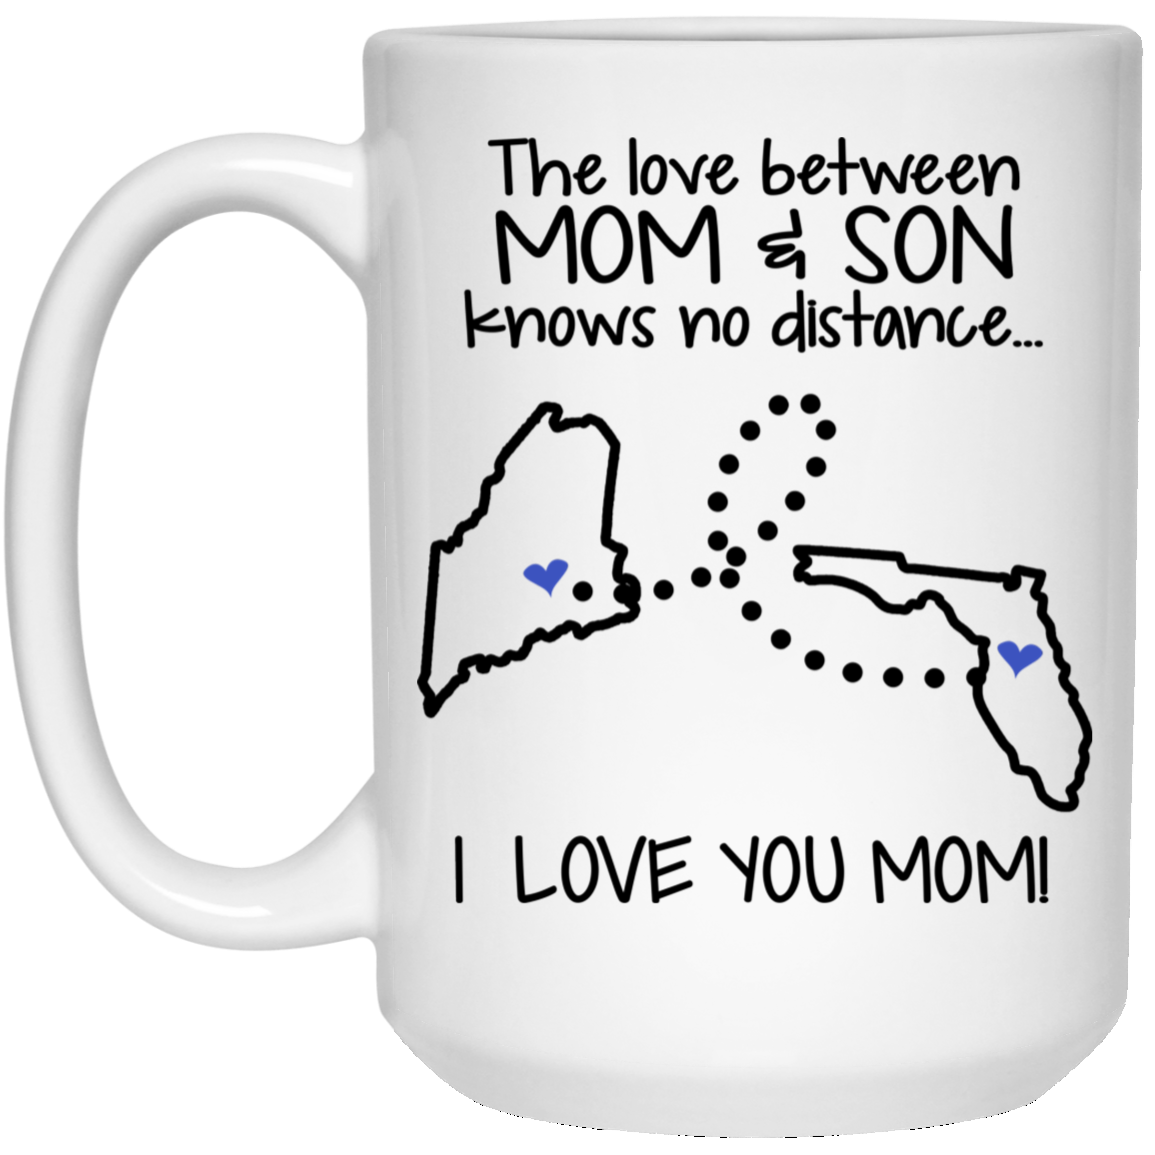 FLORIDA MAINE THE LOVE BETWEEN MOM AND SON